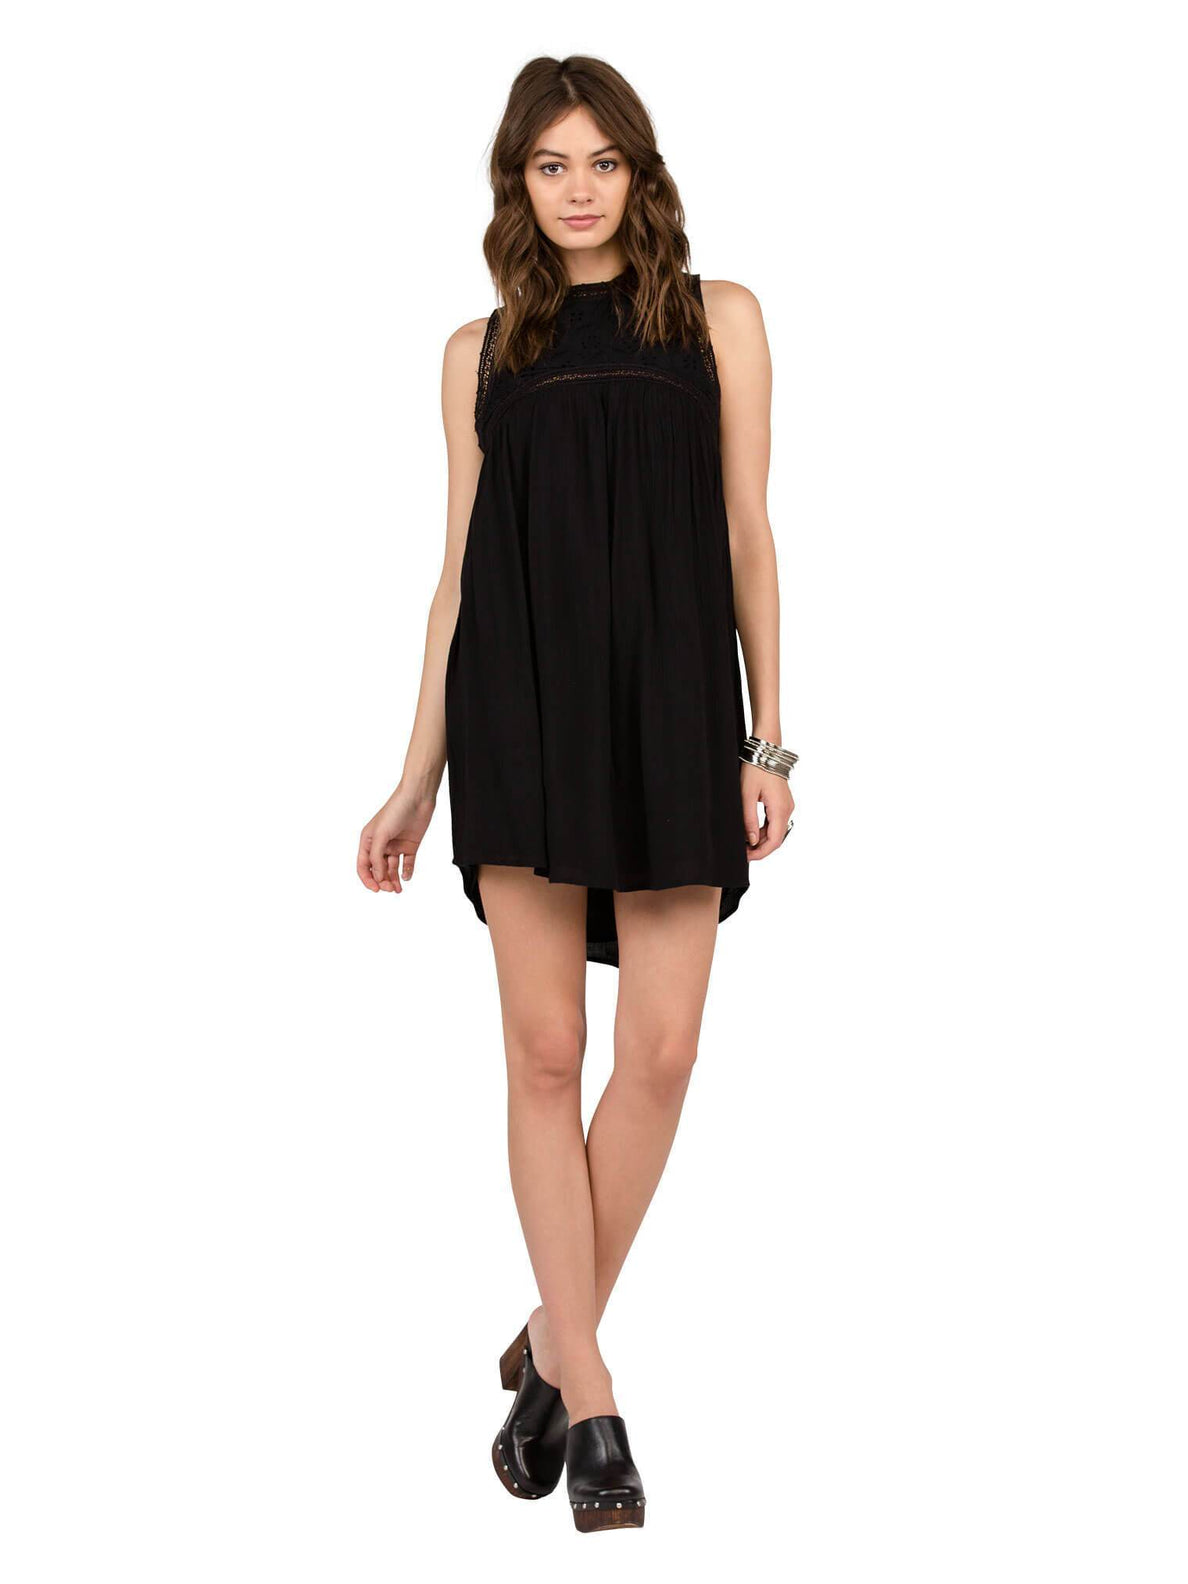 Sunset Path Dress - Black